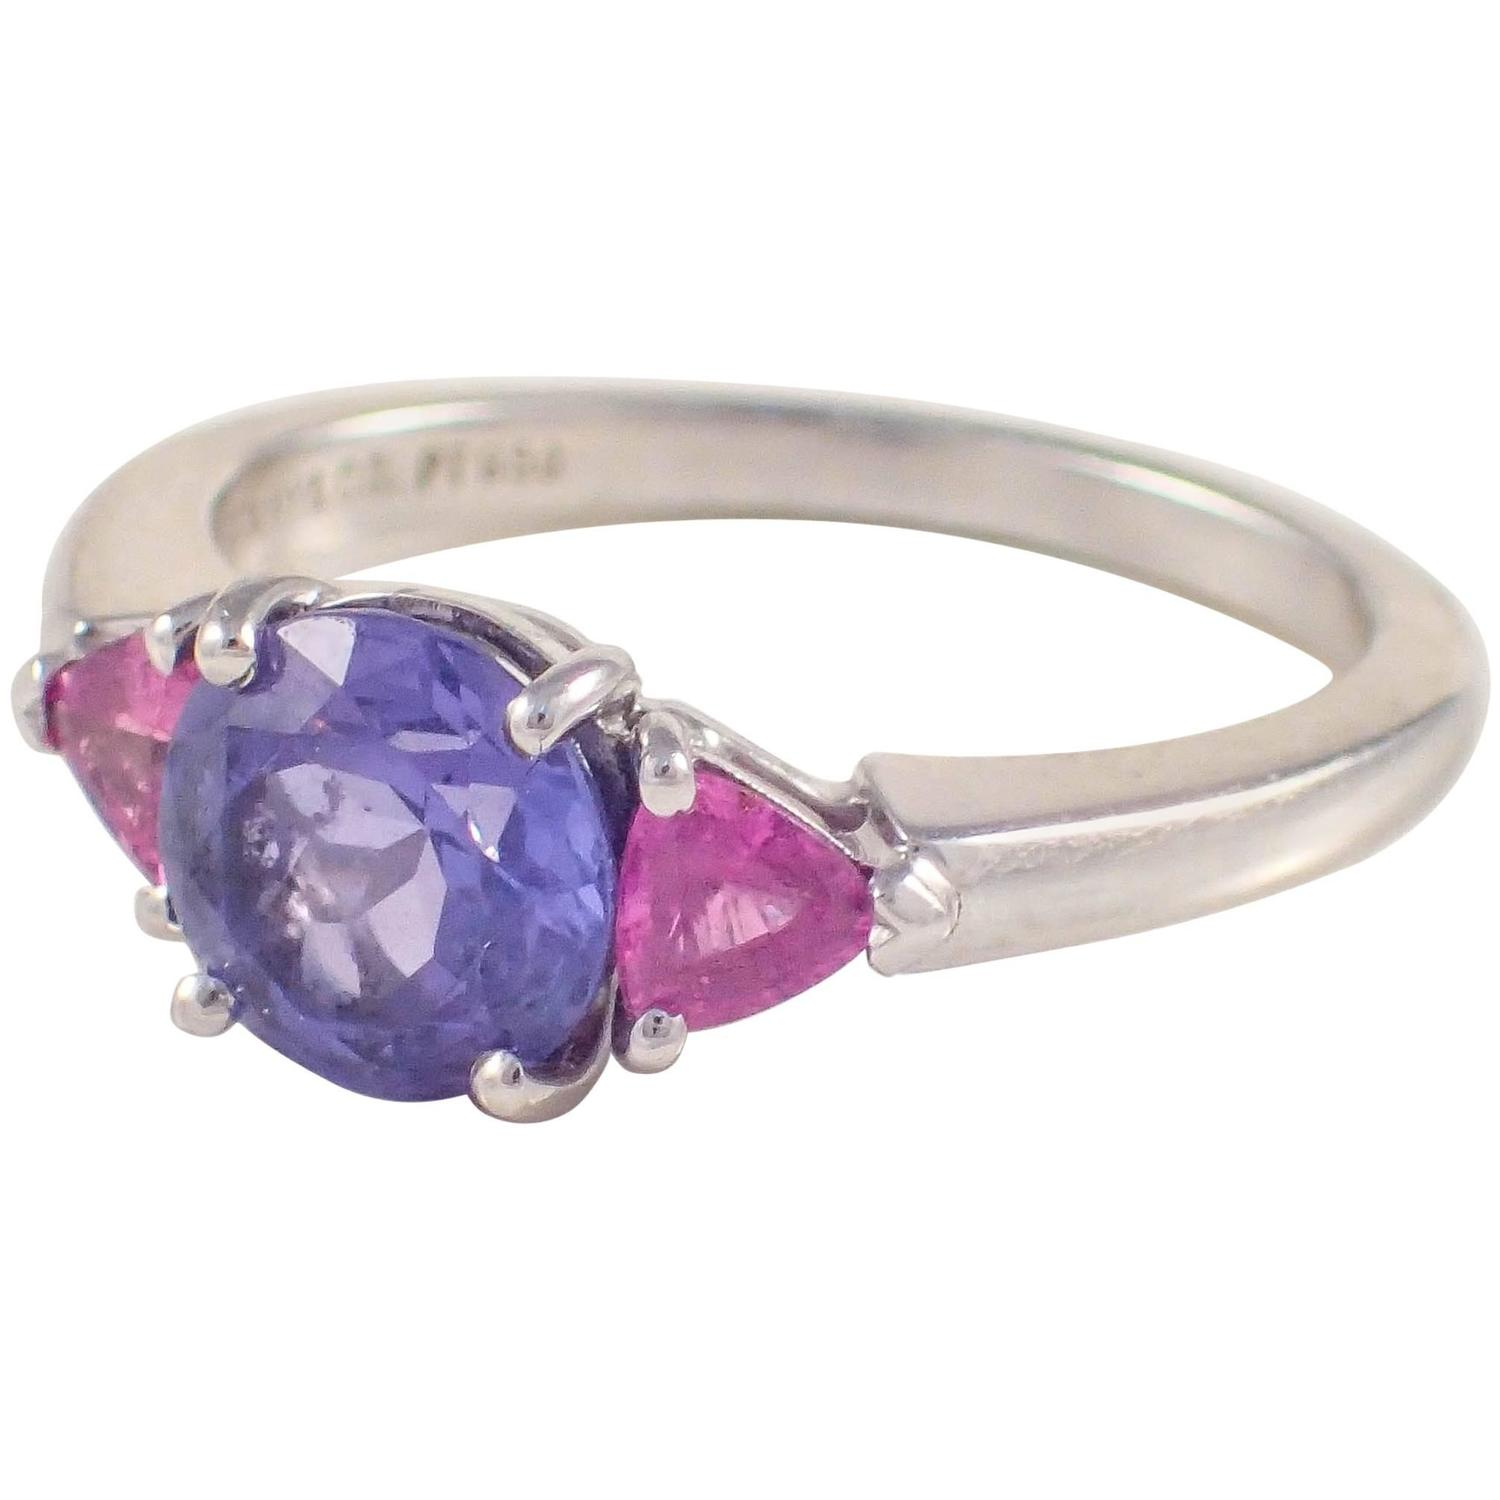 jewellery ring crop co upscale false platinum editor soleste zoom the product subsampling shop tanzanite scale tiffany